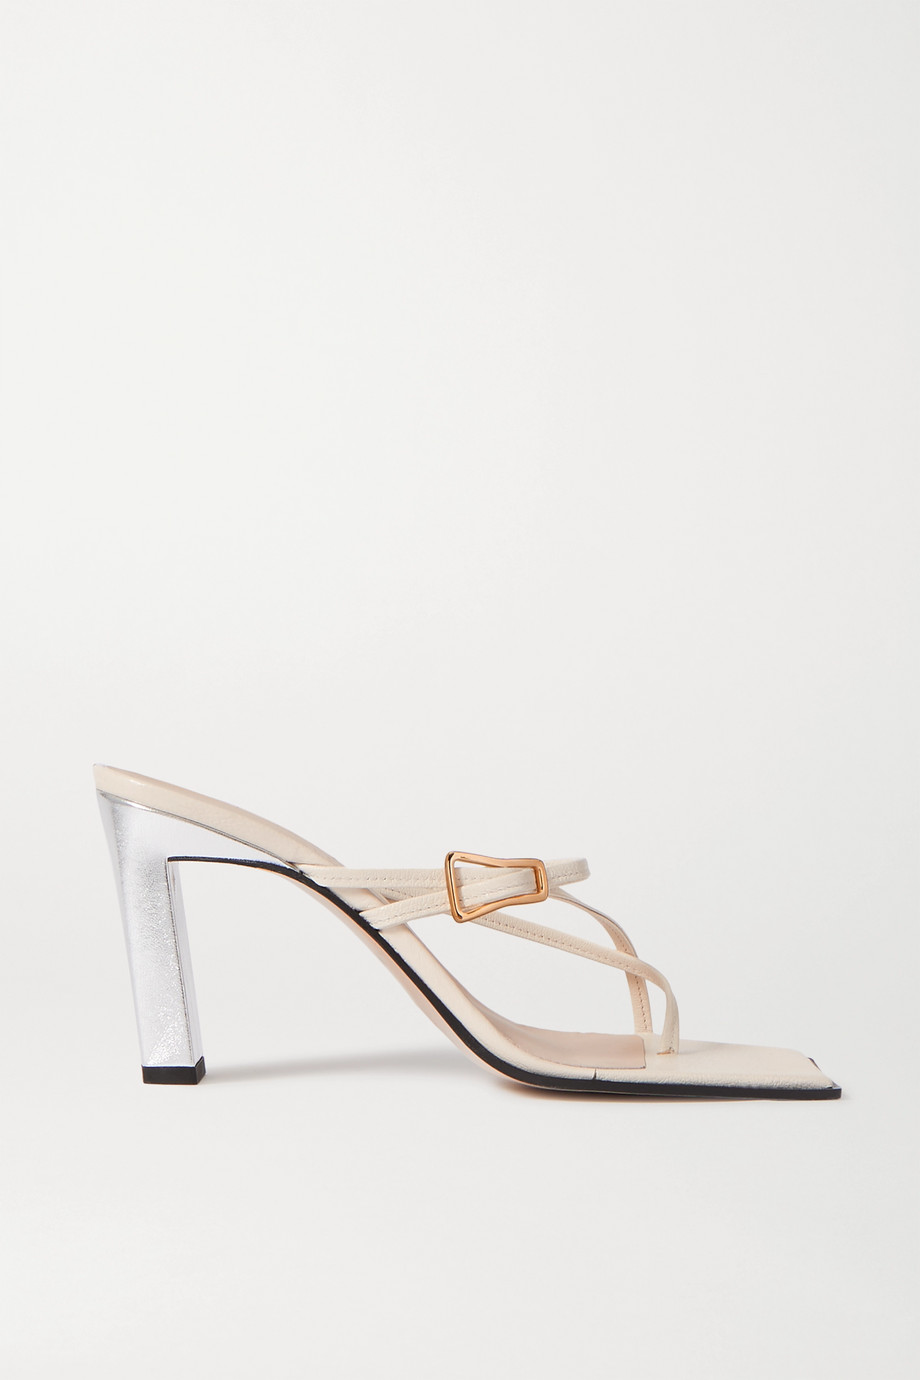 Wandler Yara metallic two-tone leather mules